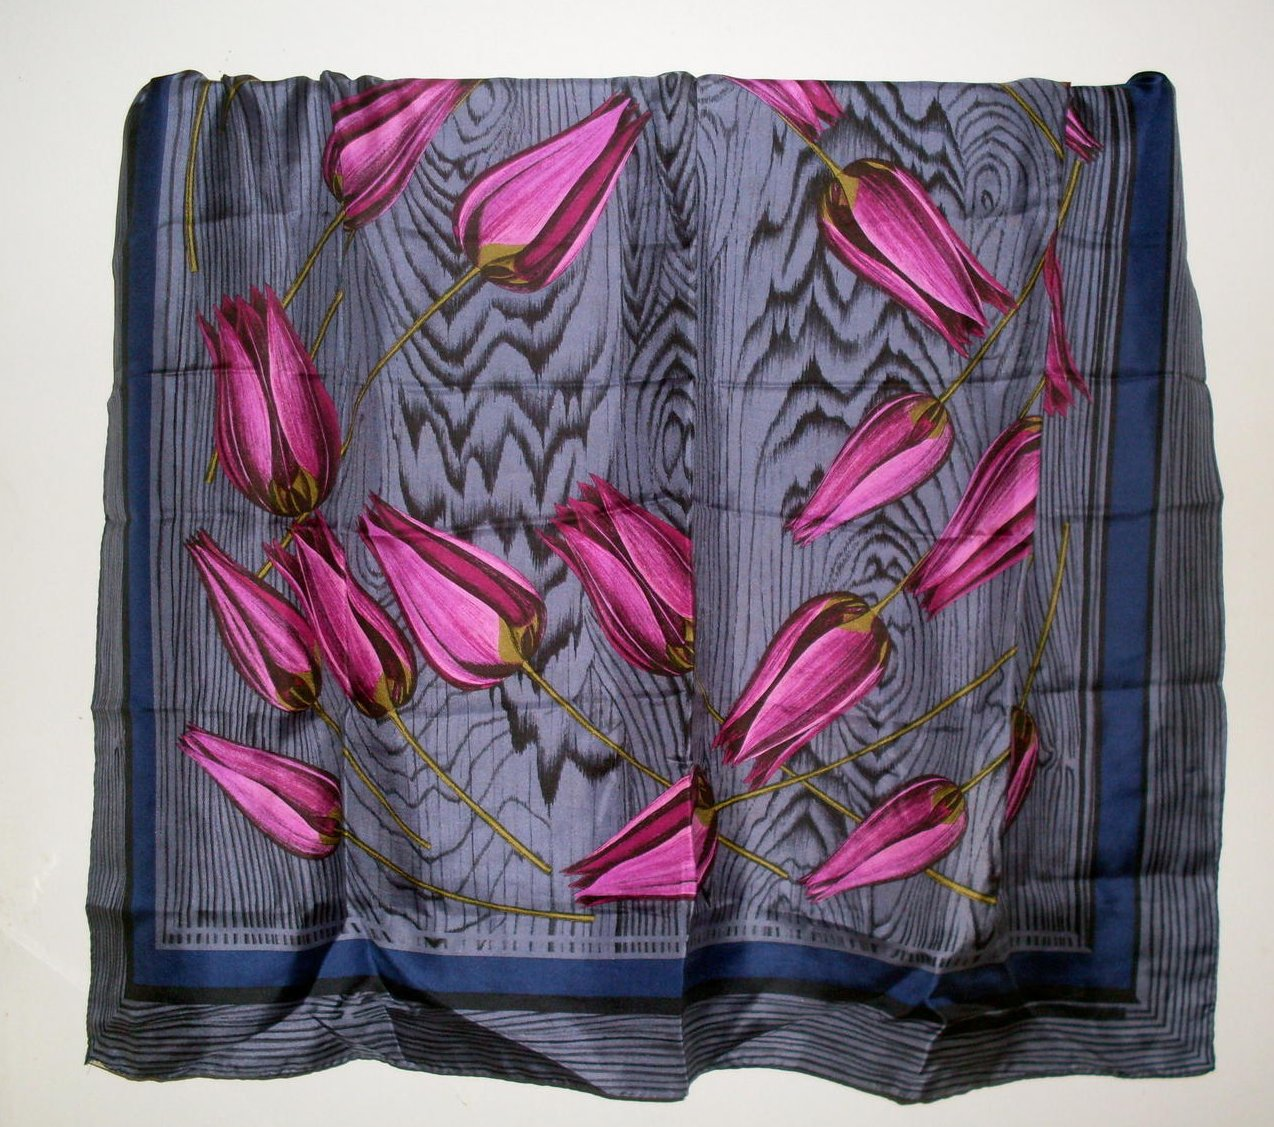 Perry Ellis Floral Print Silk Scarf Blue Gray Pink 35 Inch